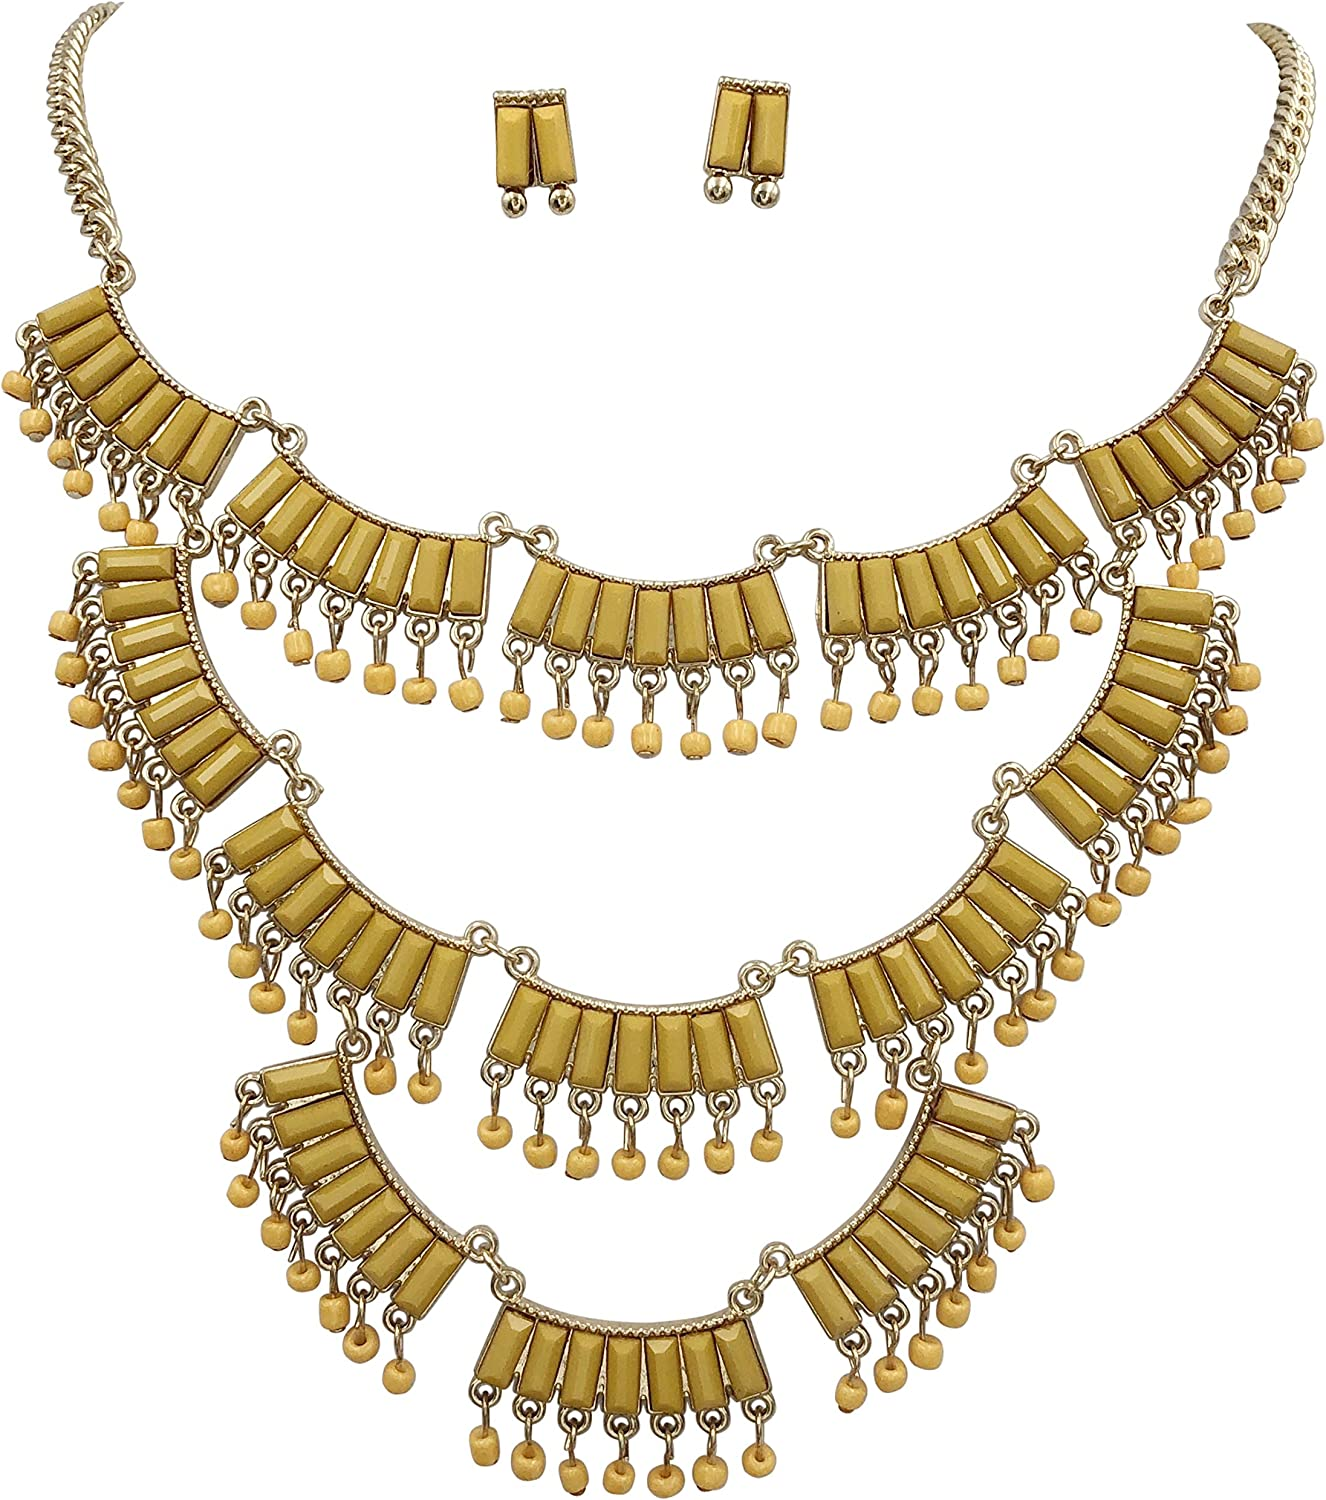 Gypsy Jewels 3 Row Color Bar Dangle Beads Gold Tone Unique Bib Statement Necklace & Earrings Set